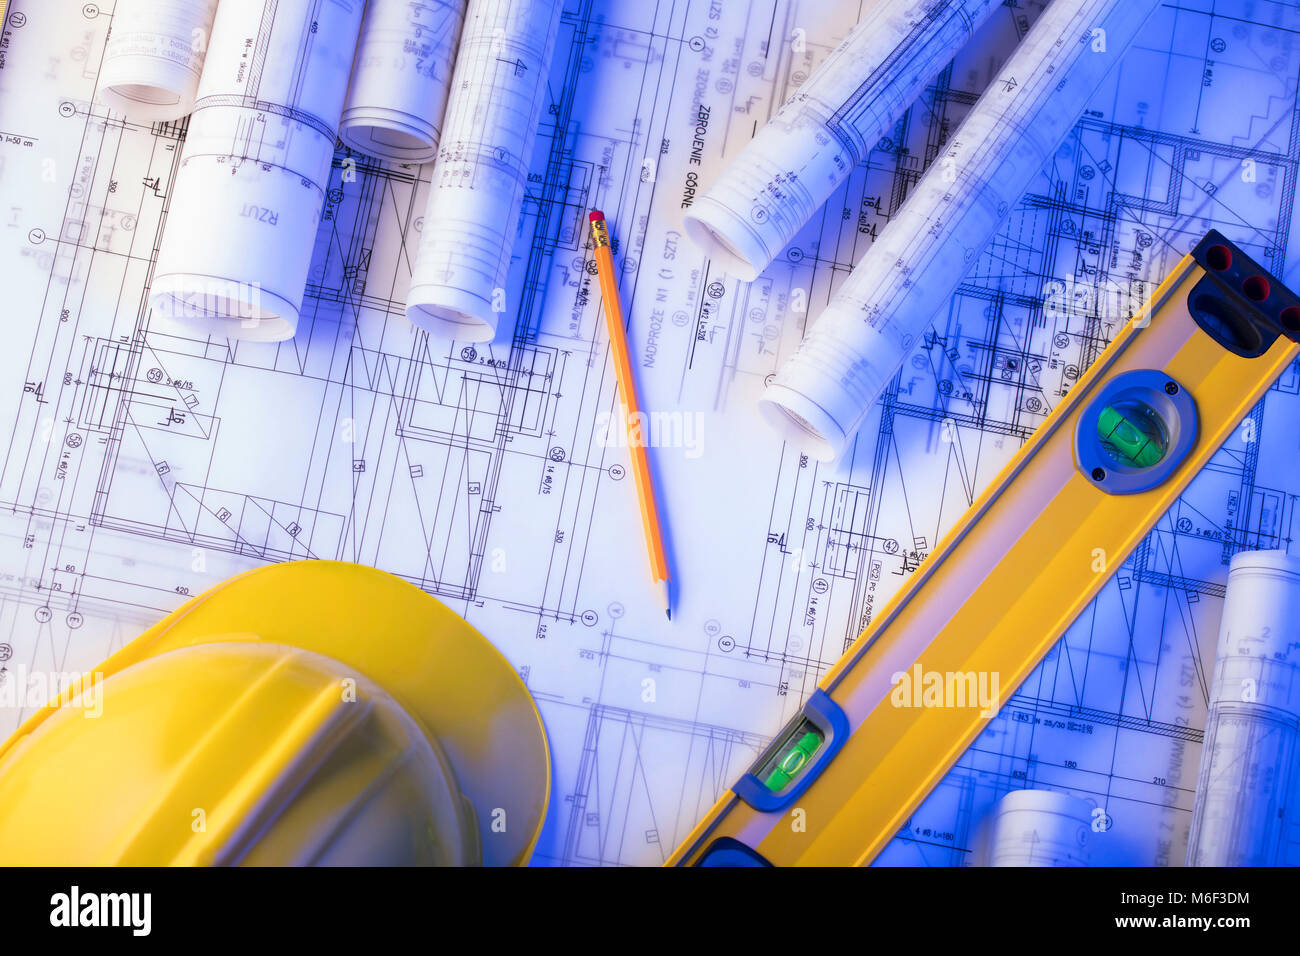 Architecture and construction concept. Rolls of blueprints, libela and helmet of constructor. - Stock Image